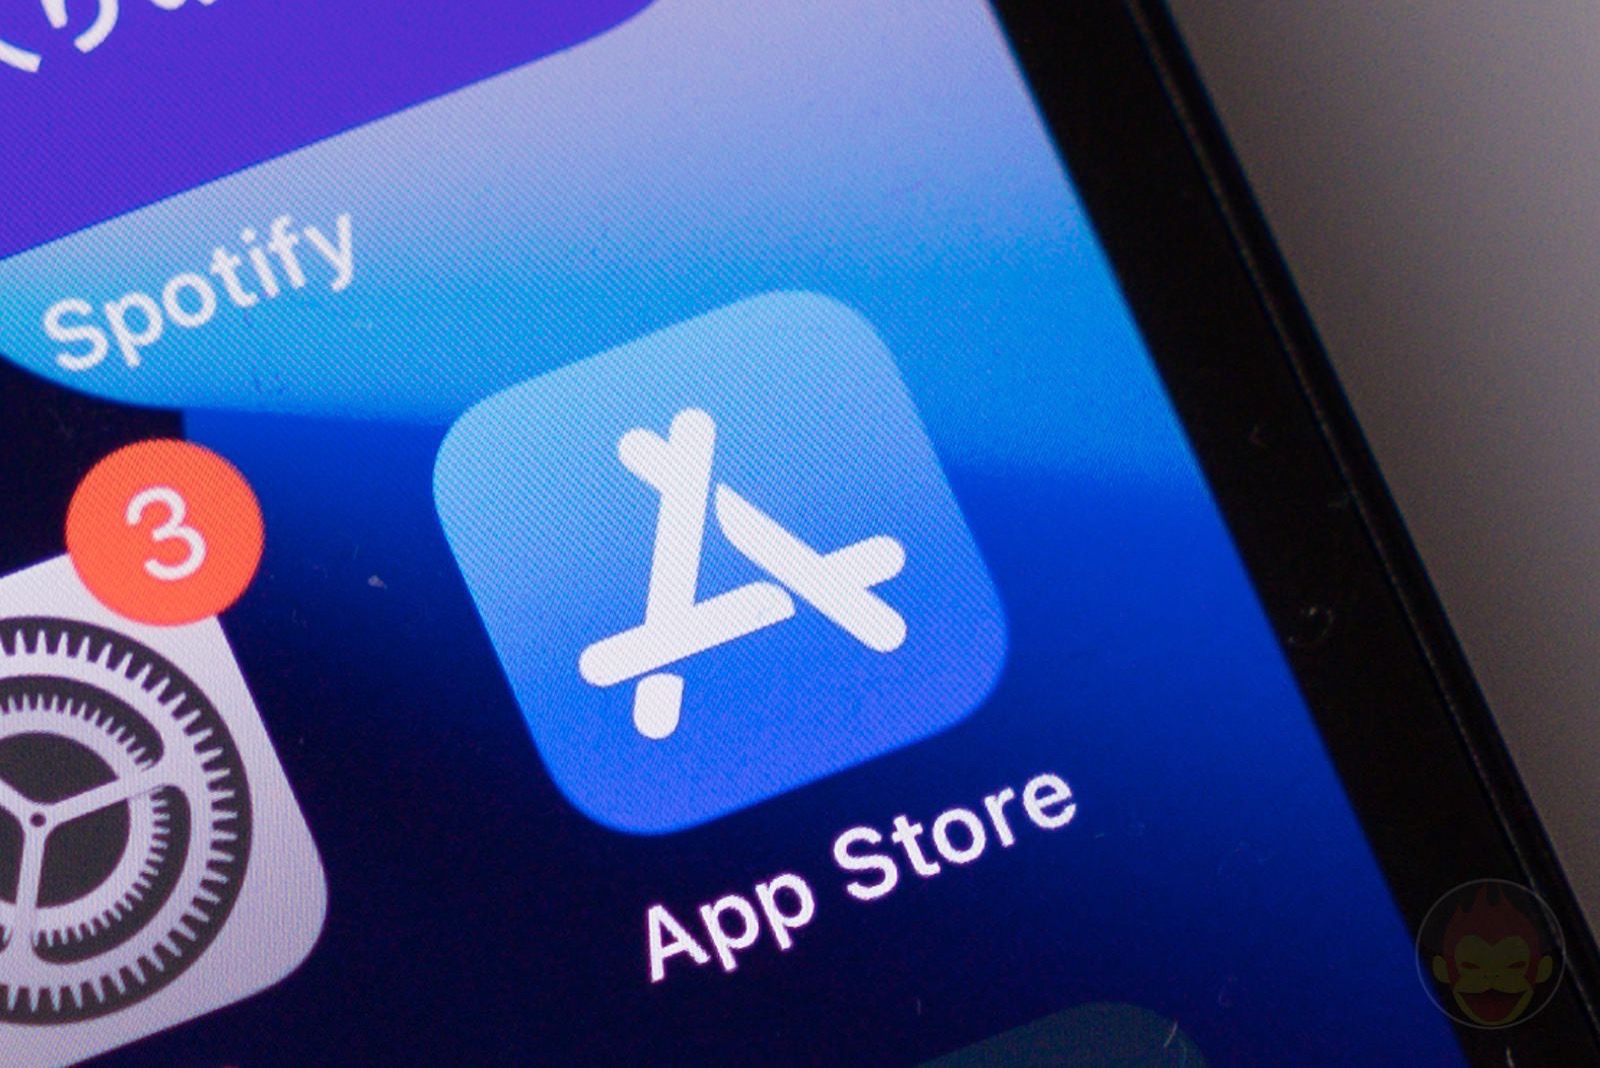 App Store Icon Images 01